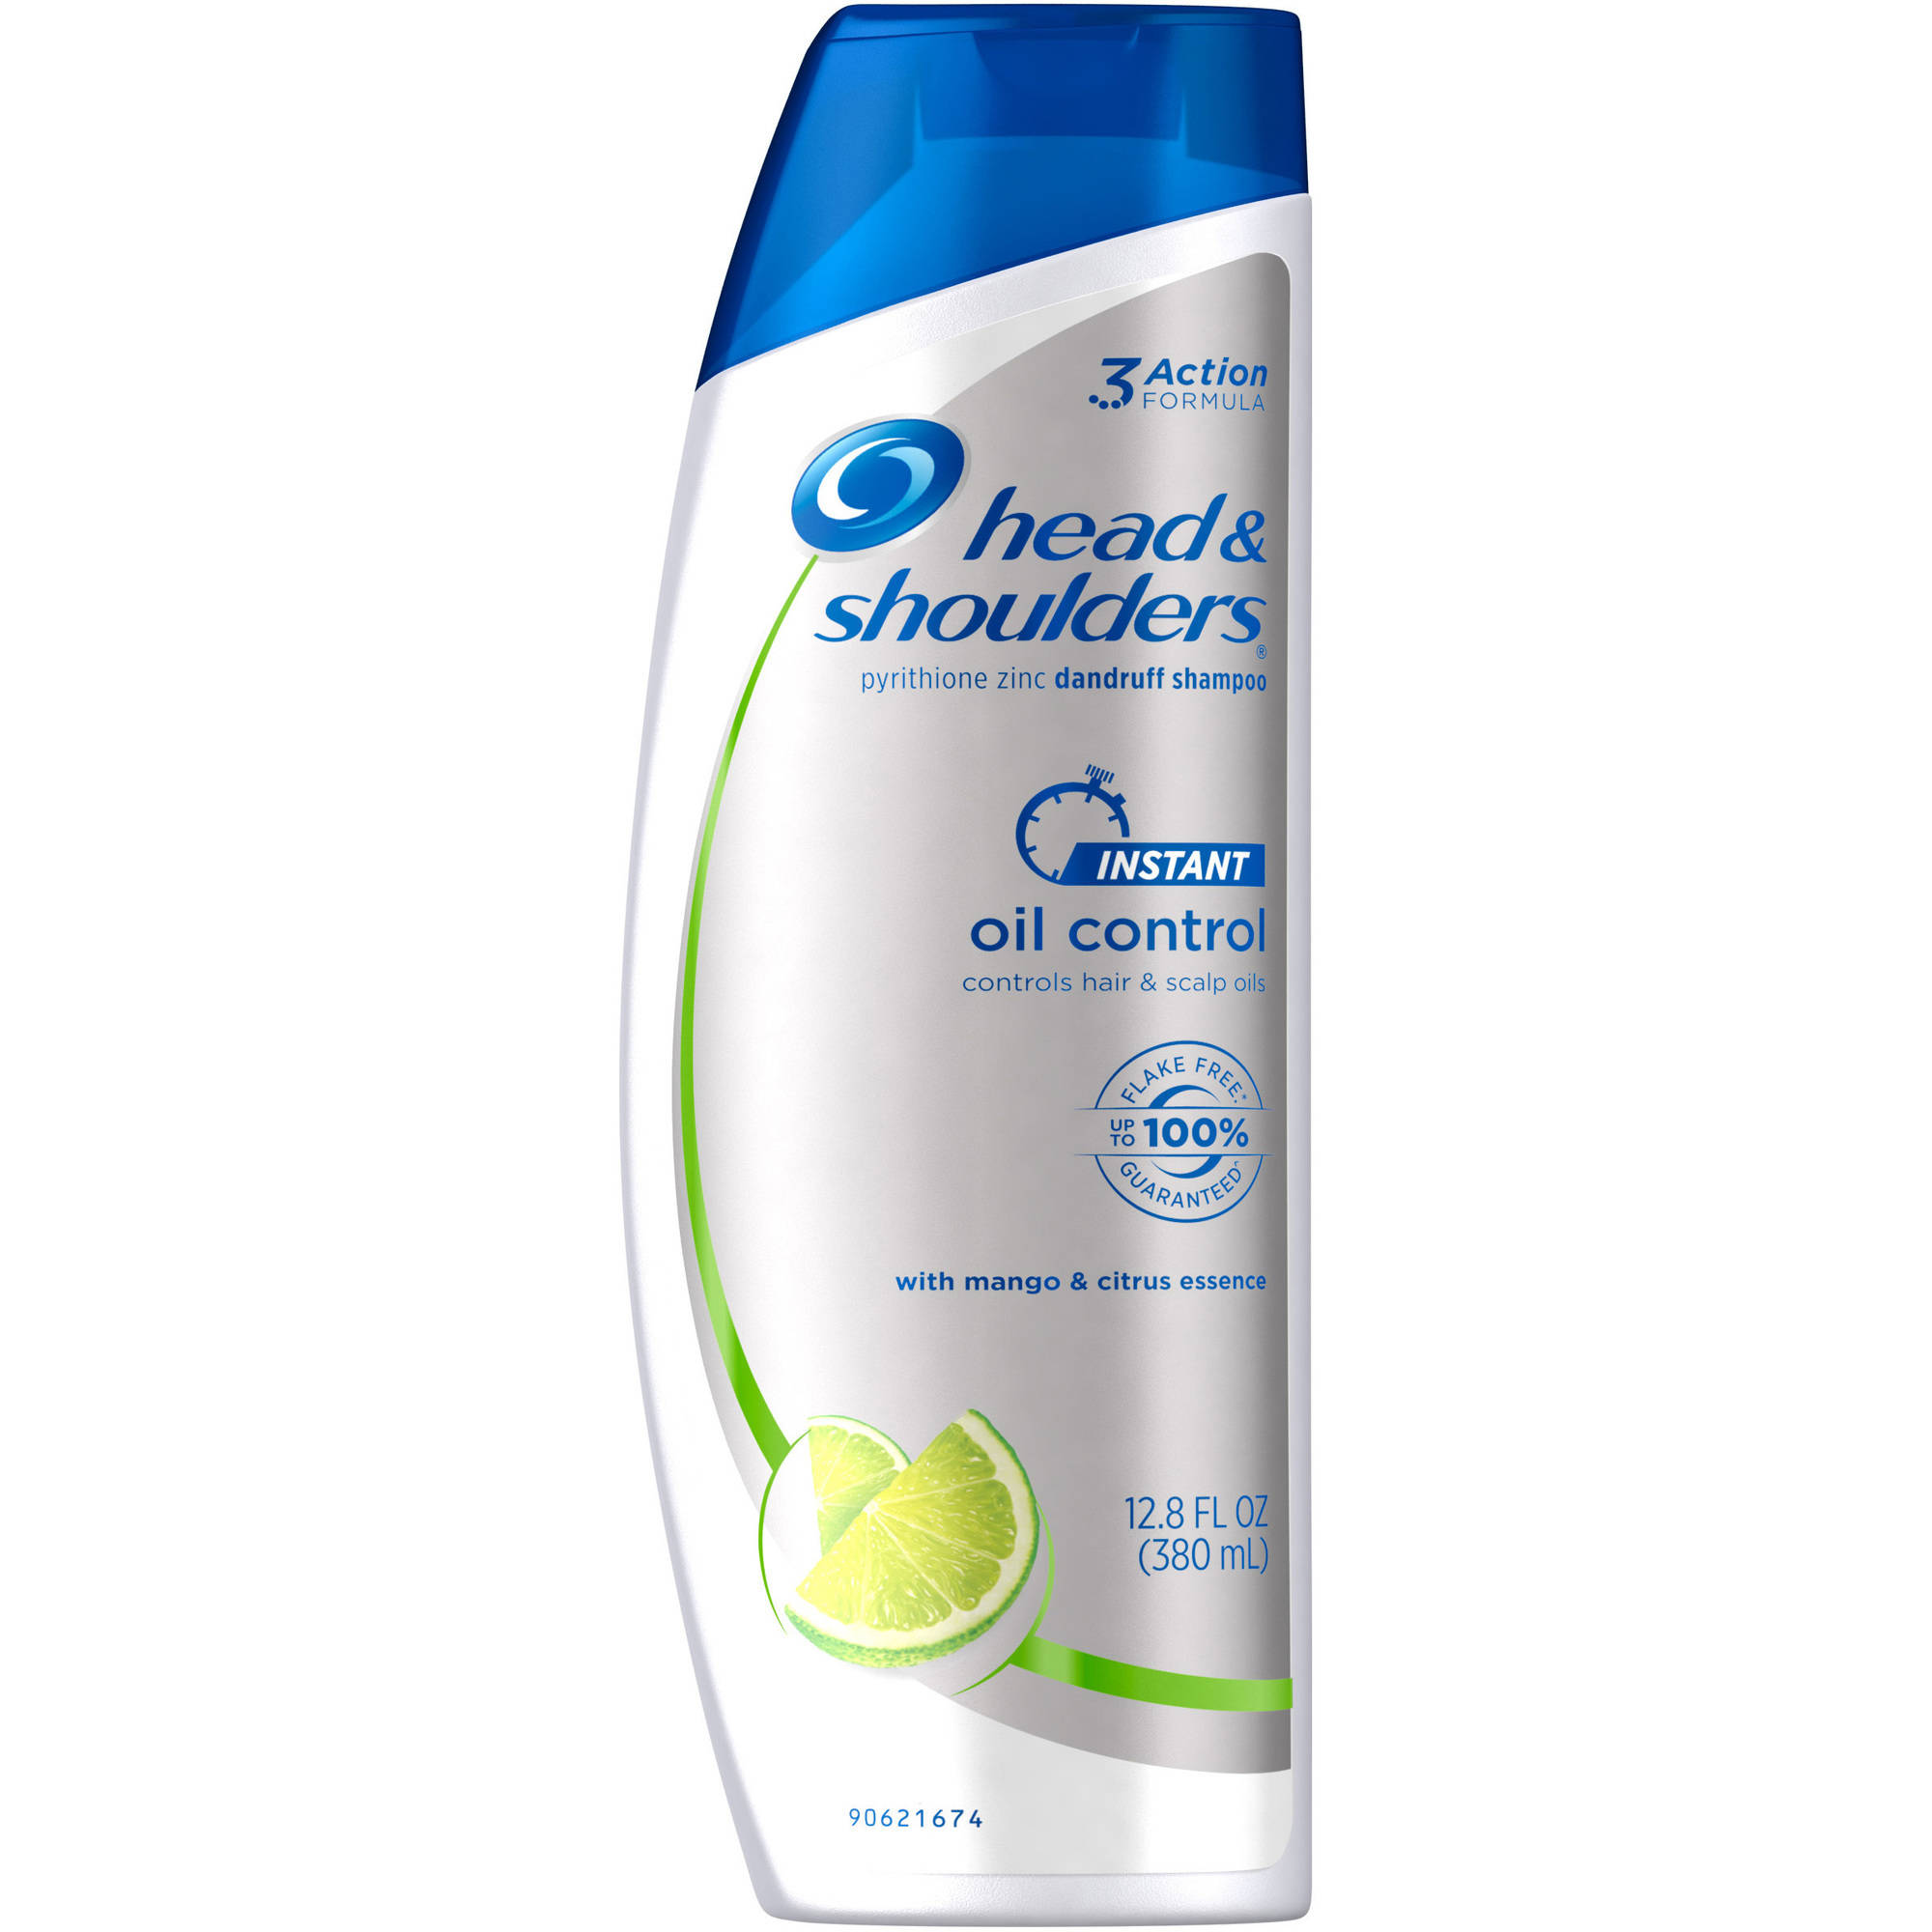 Head & Shoulders Instant Oil Control Dandruff Shampoo, 12.8 fl oz